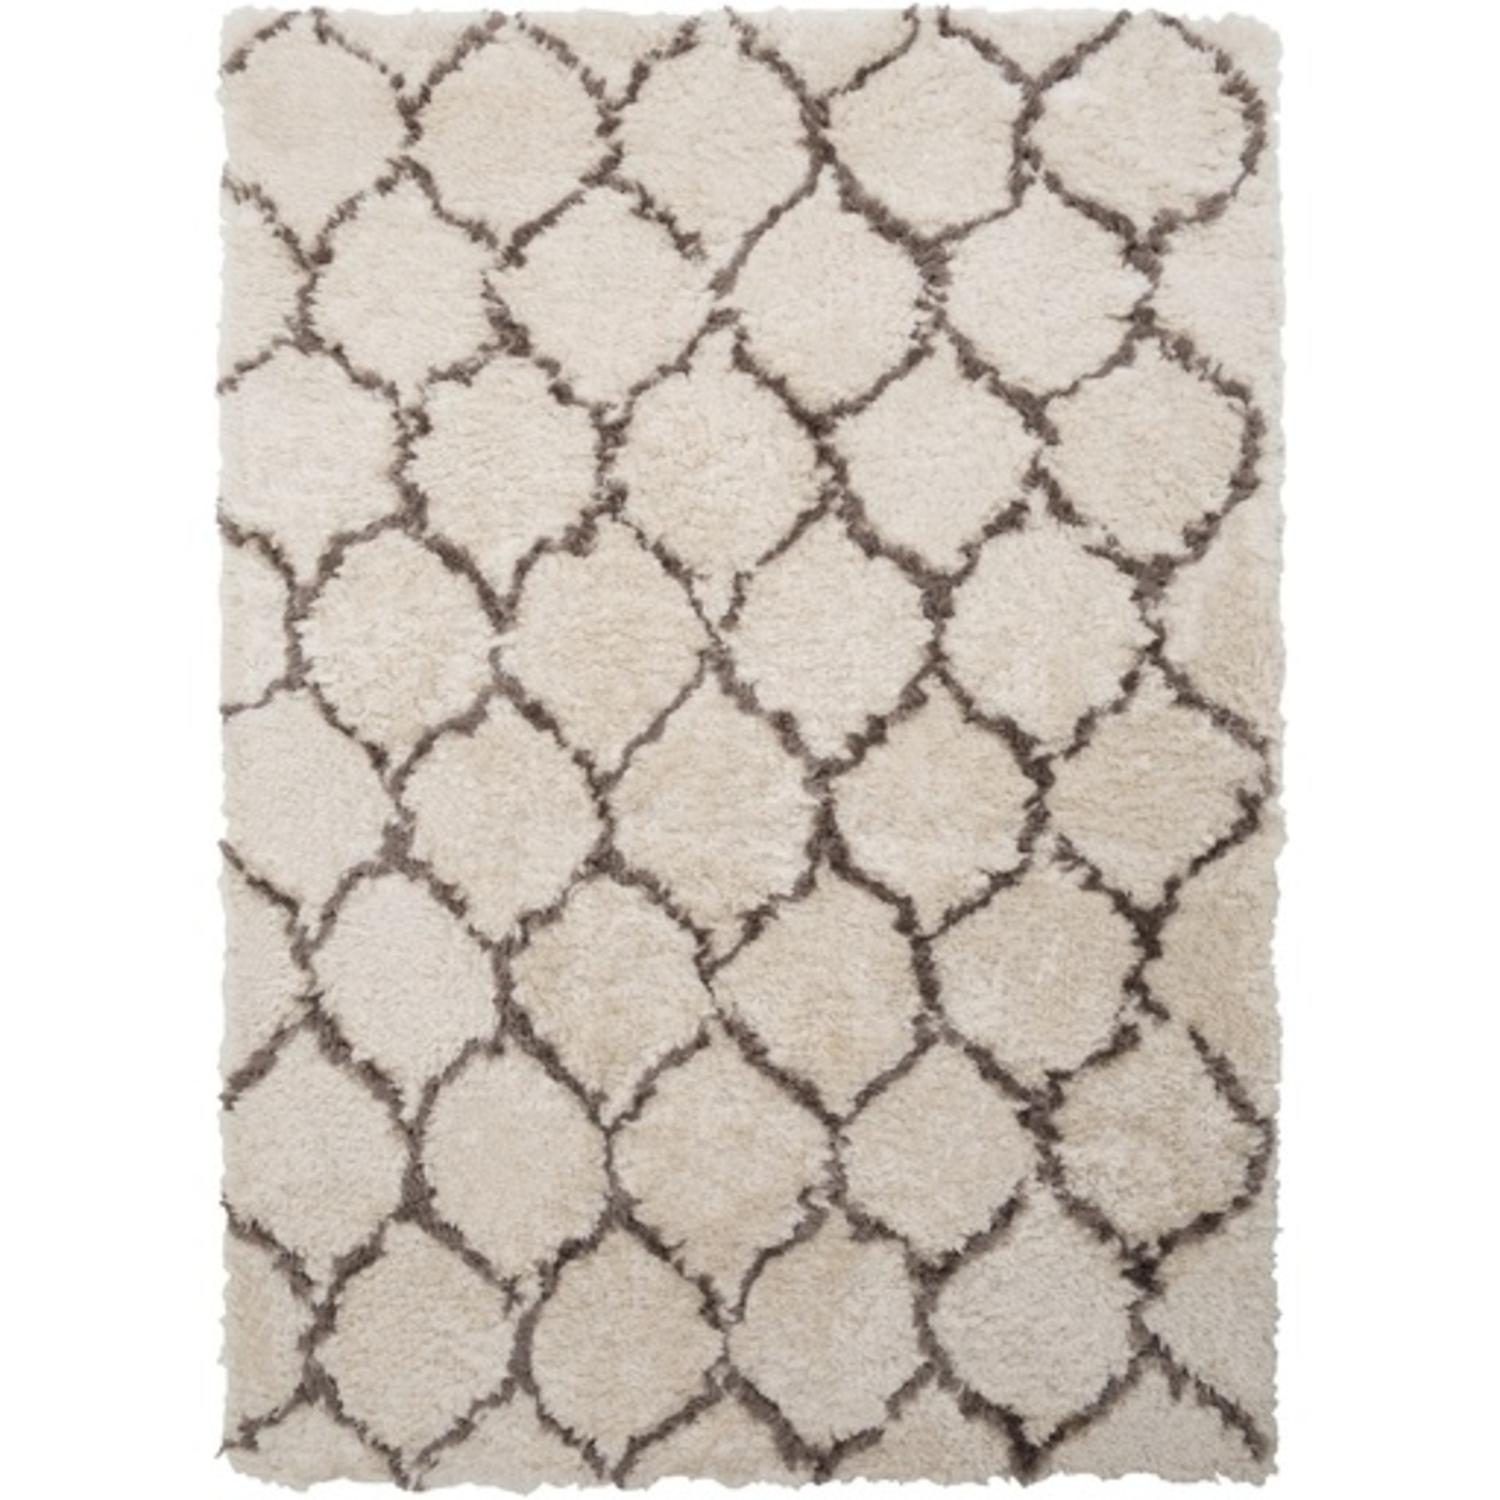 4' x 6' Pebble Path Silver Gray and Walnut Brown Hand Tufted Area Throw Rug